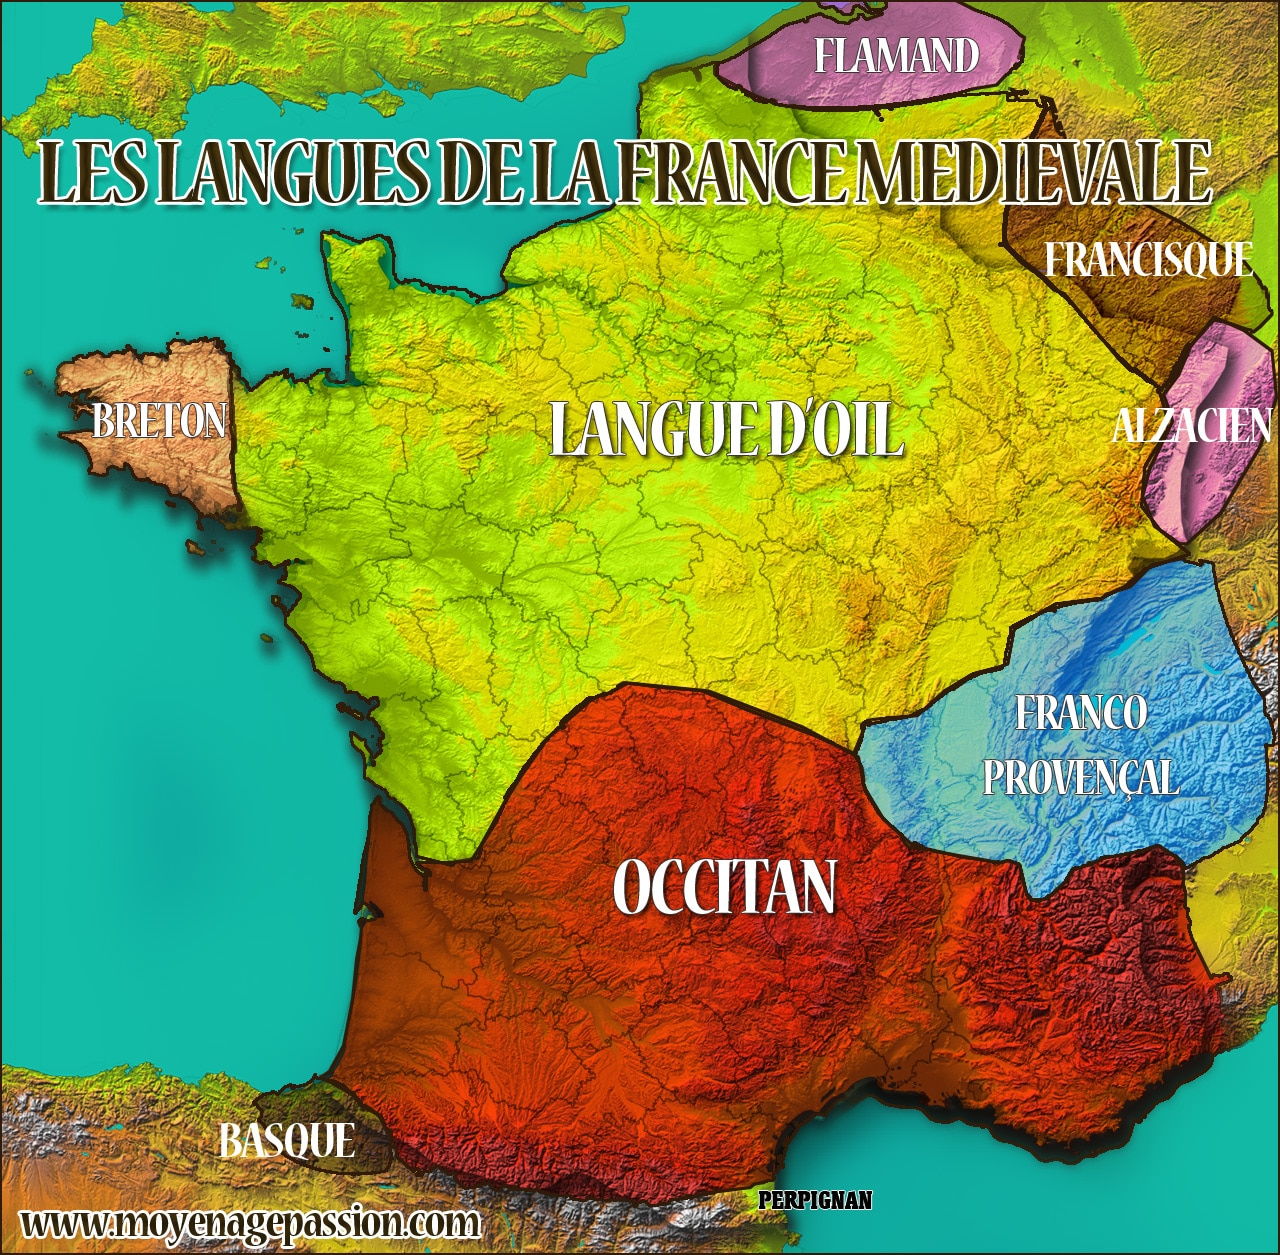 carte_occitan_langue_france_medievale_oil_oc_moyen-age_central